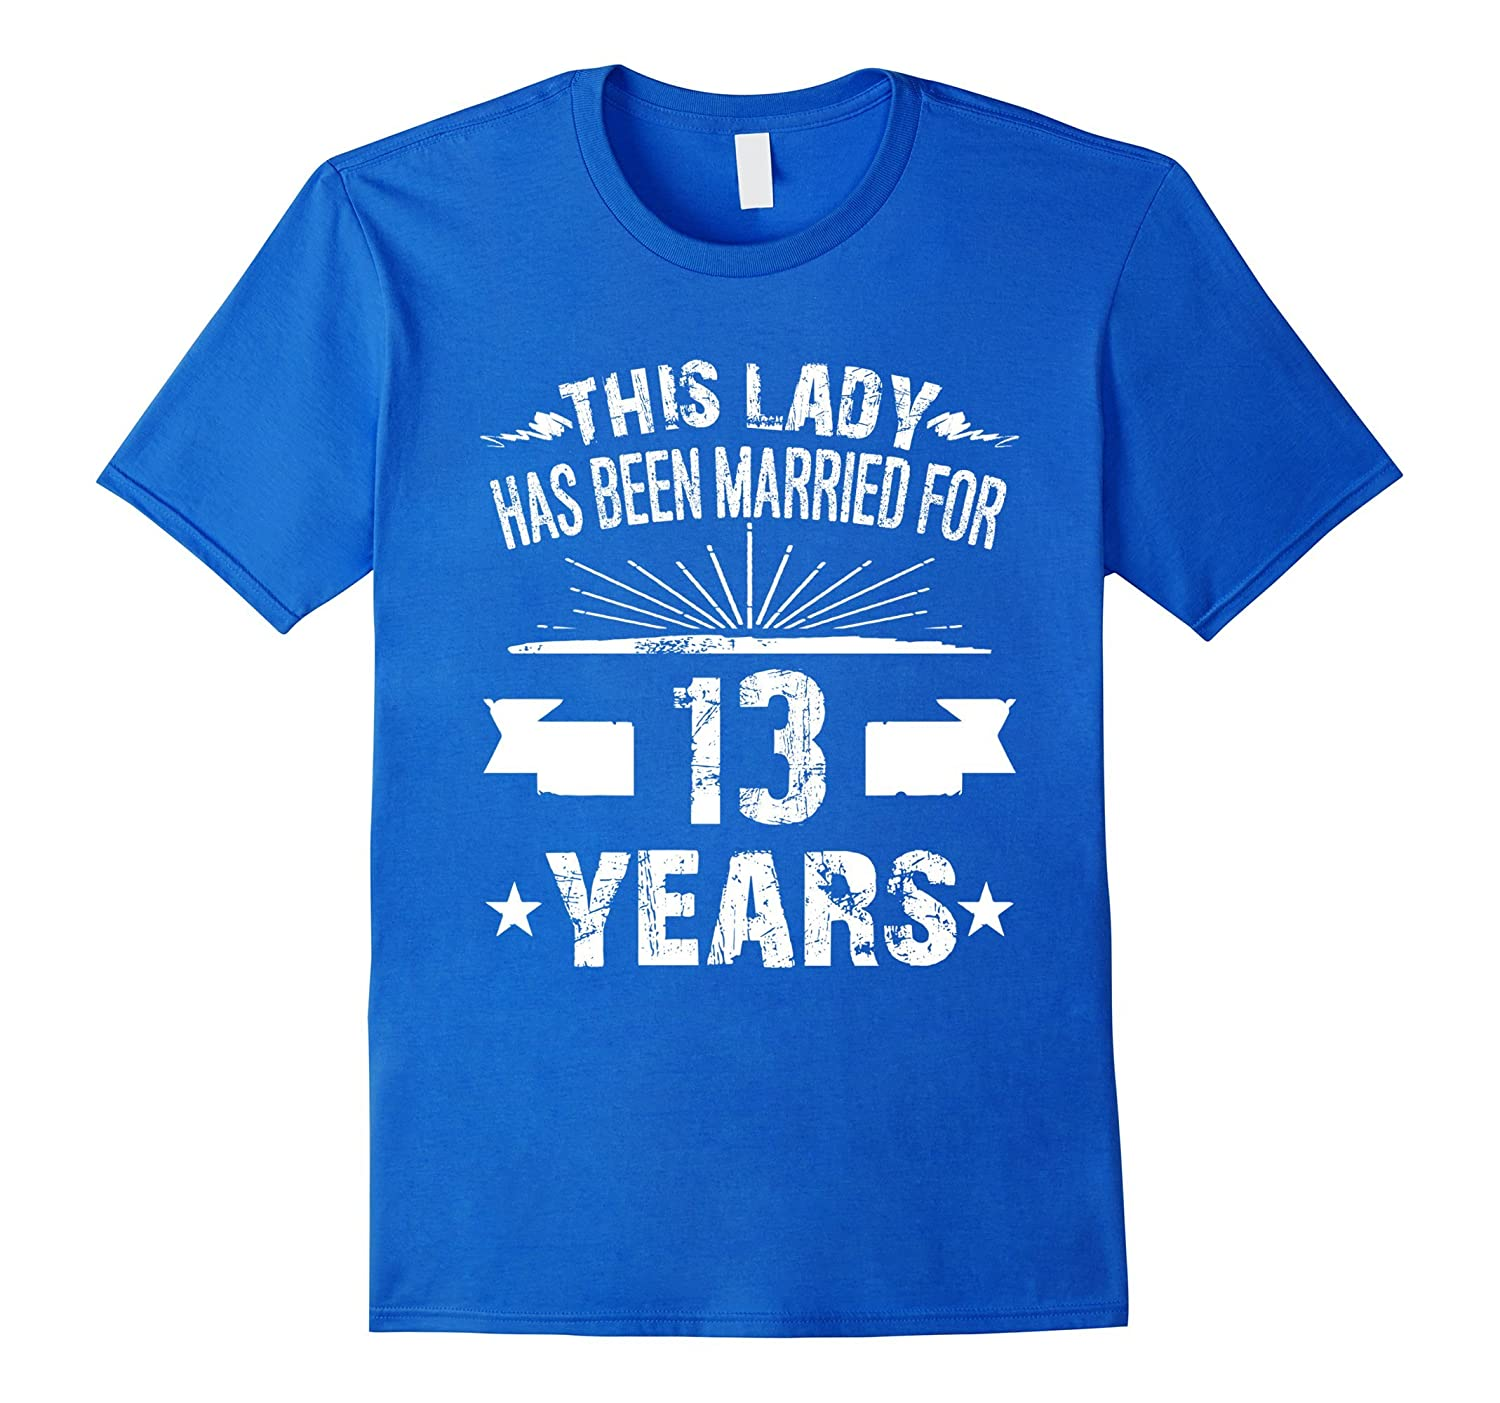 13th Wedding Anniversary Gift Ideas For Her: 13th Wedding Anniversary Gifts 13 Year Shirt For Her-RT